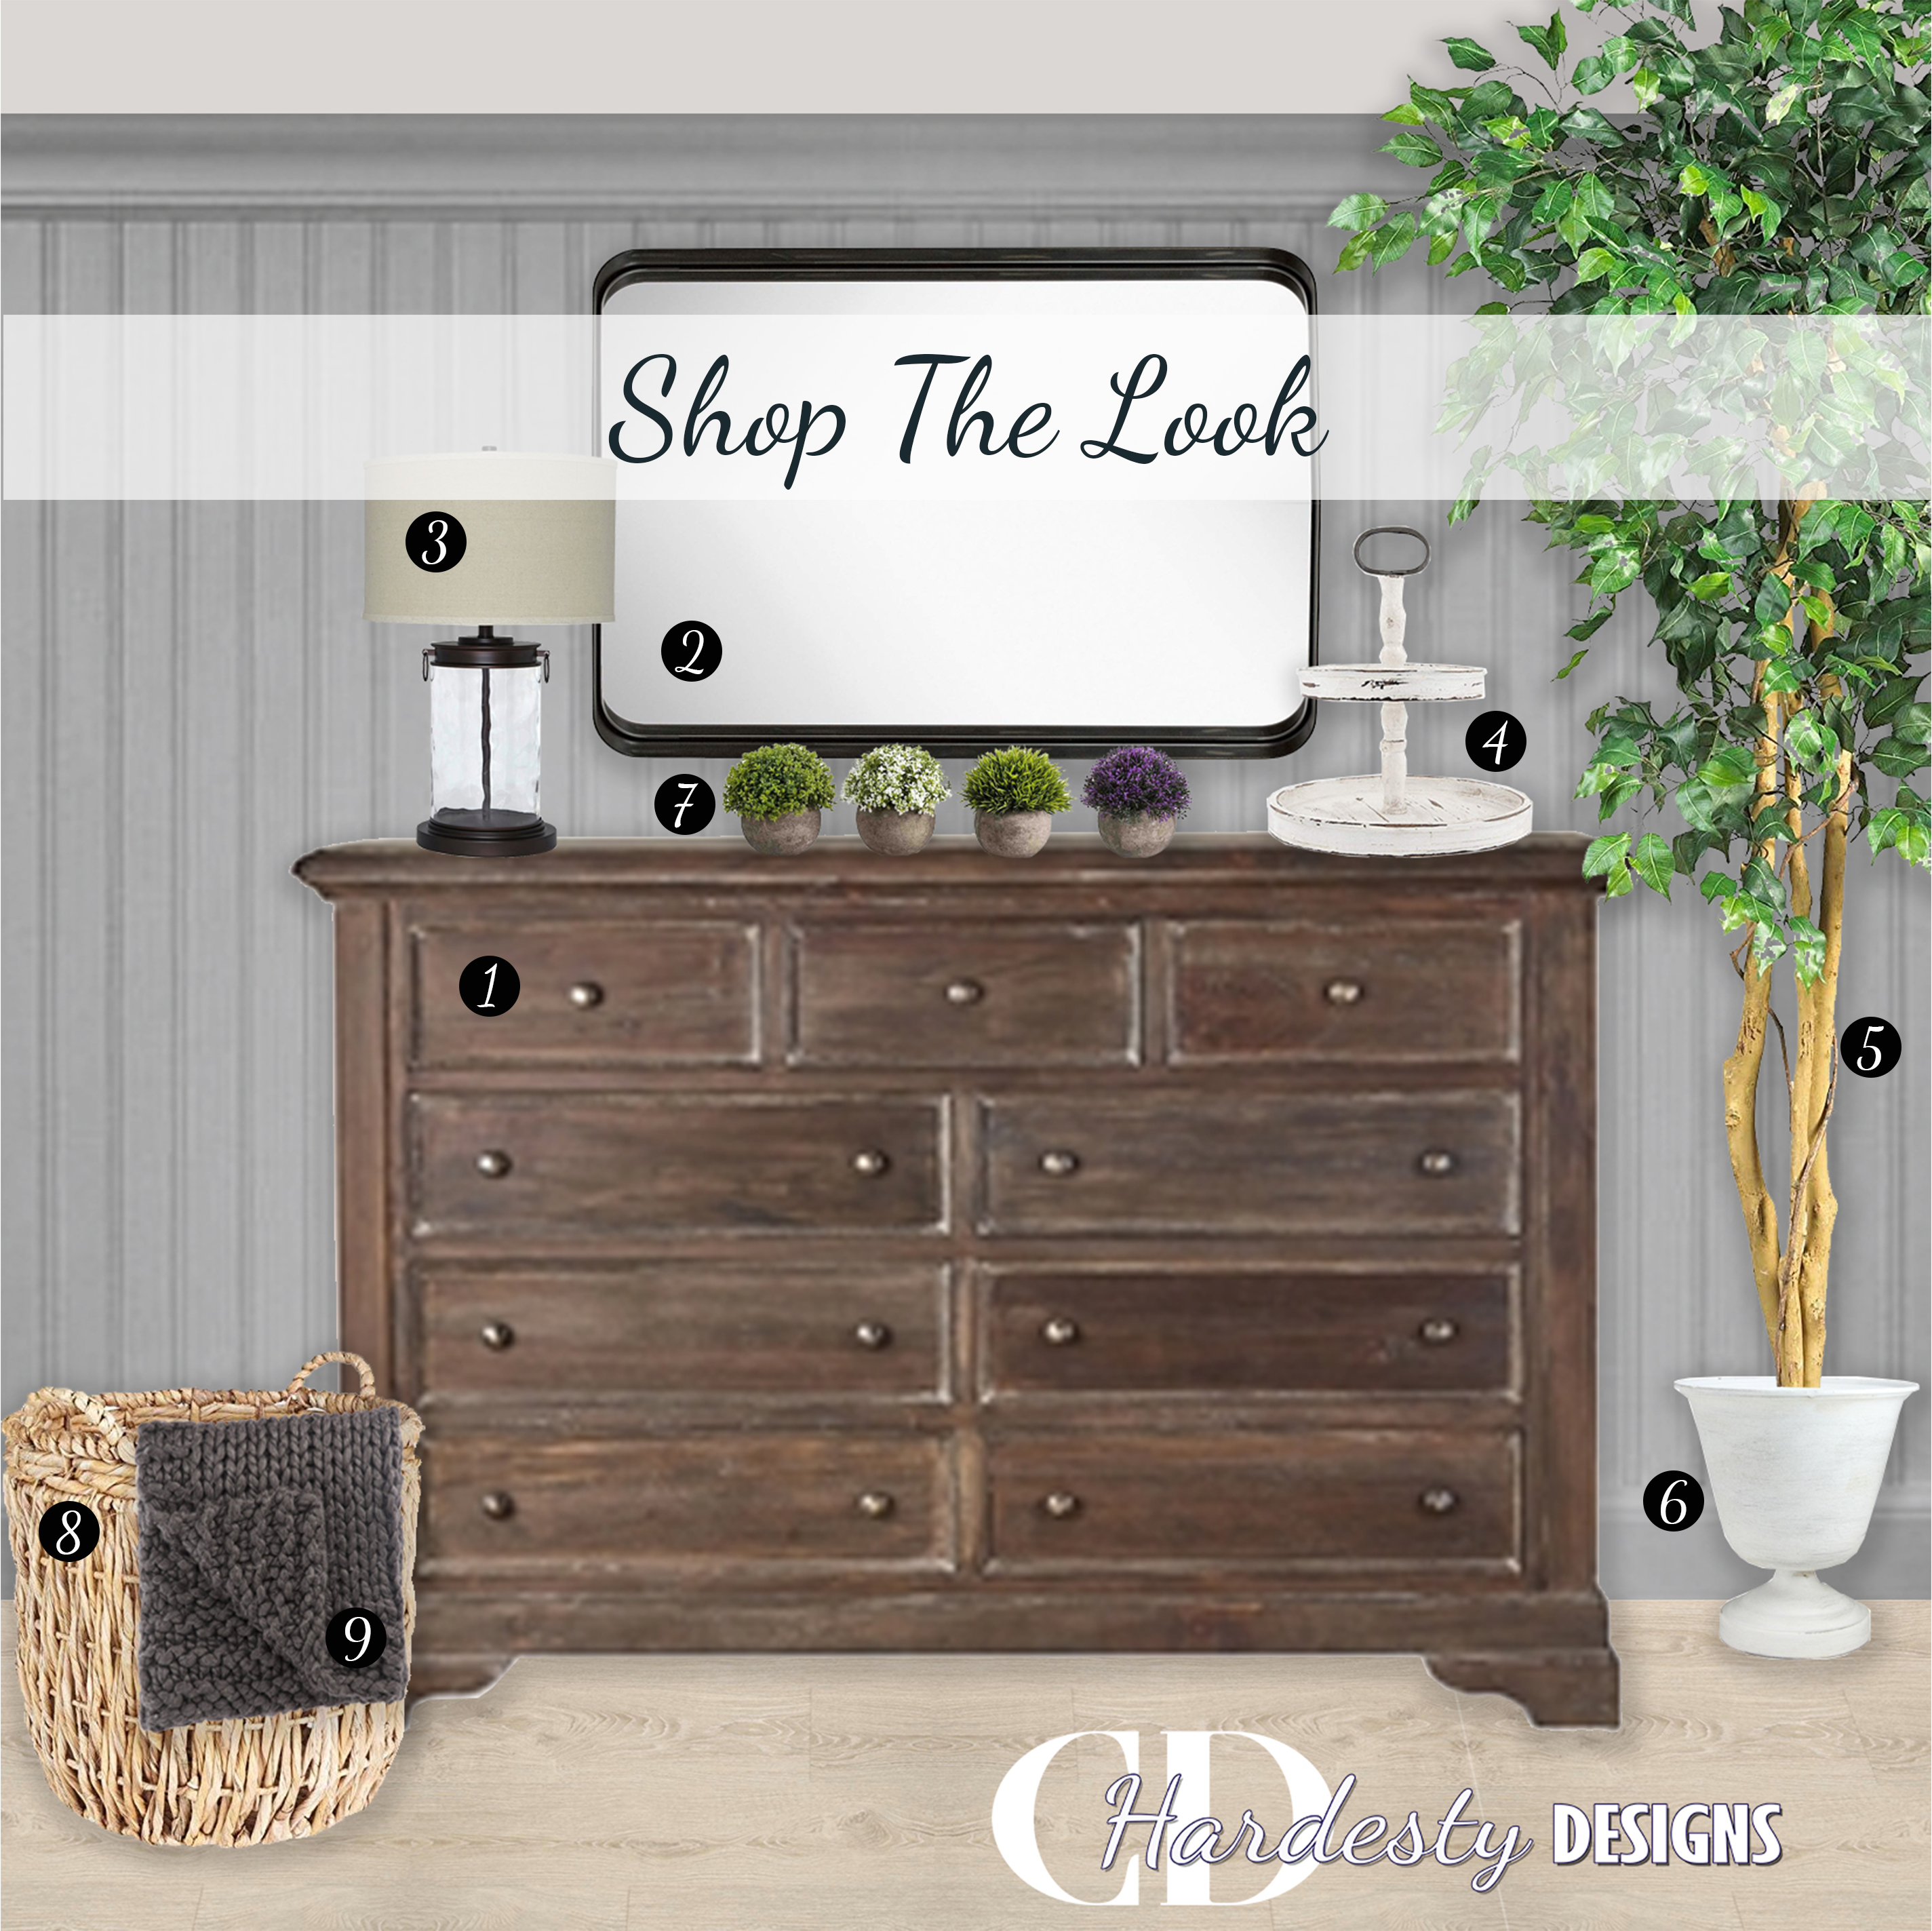 Shop The Look!  Farmhouse style Bedroom with distressed wood, metal accents and a neutral color palette.